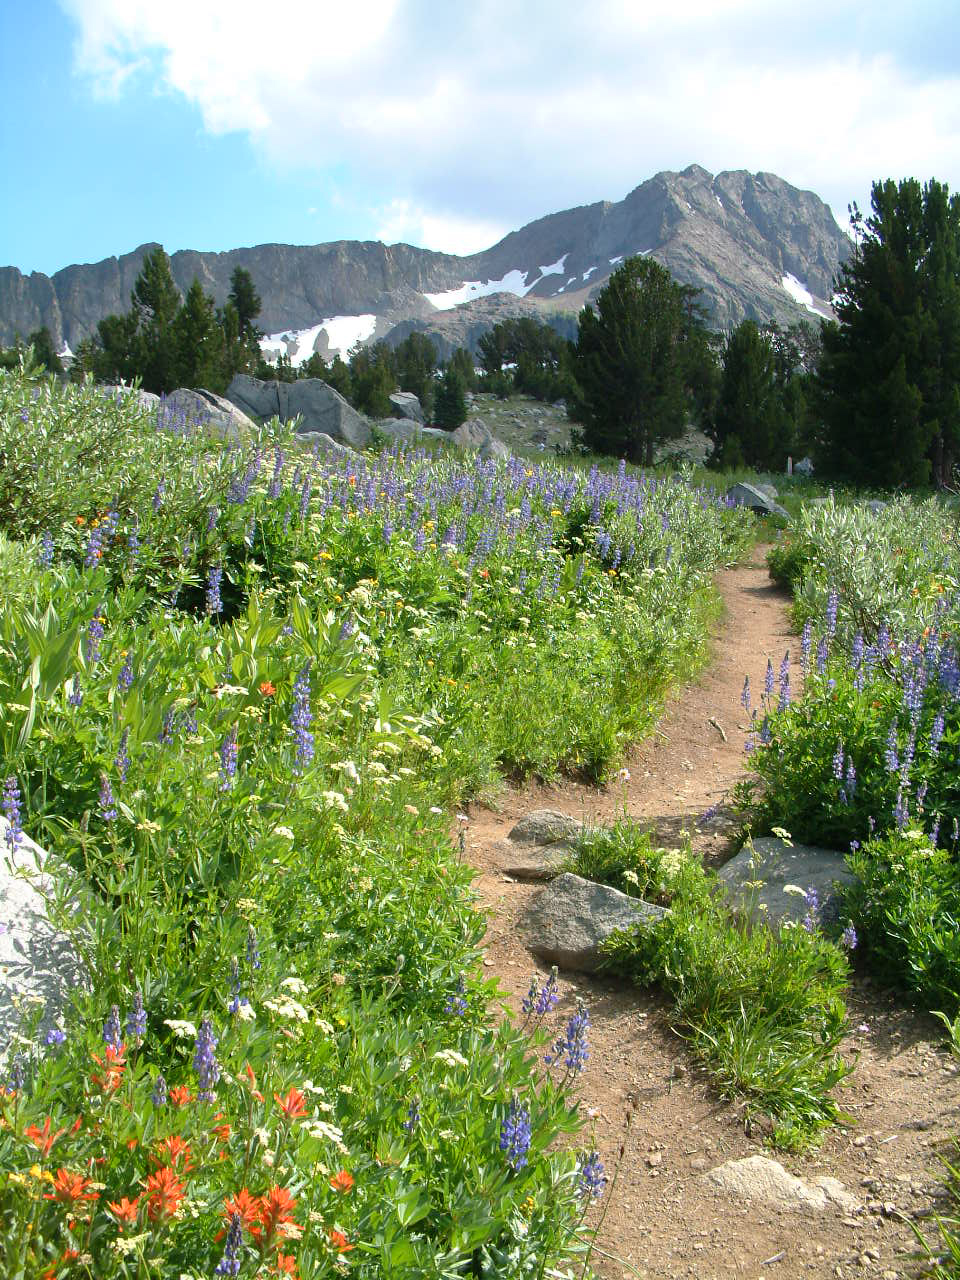 Photo of trail winding through flowers.